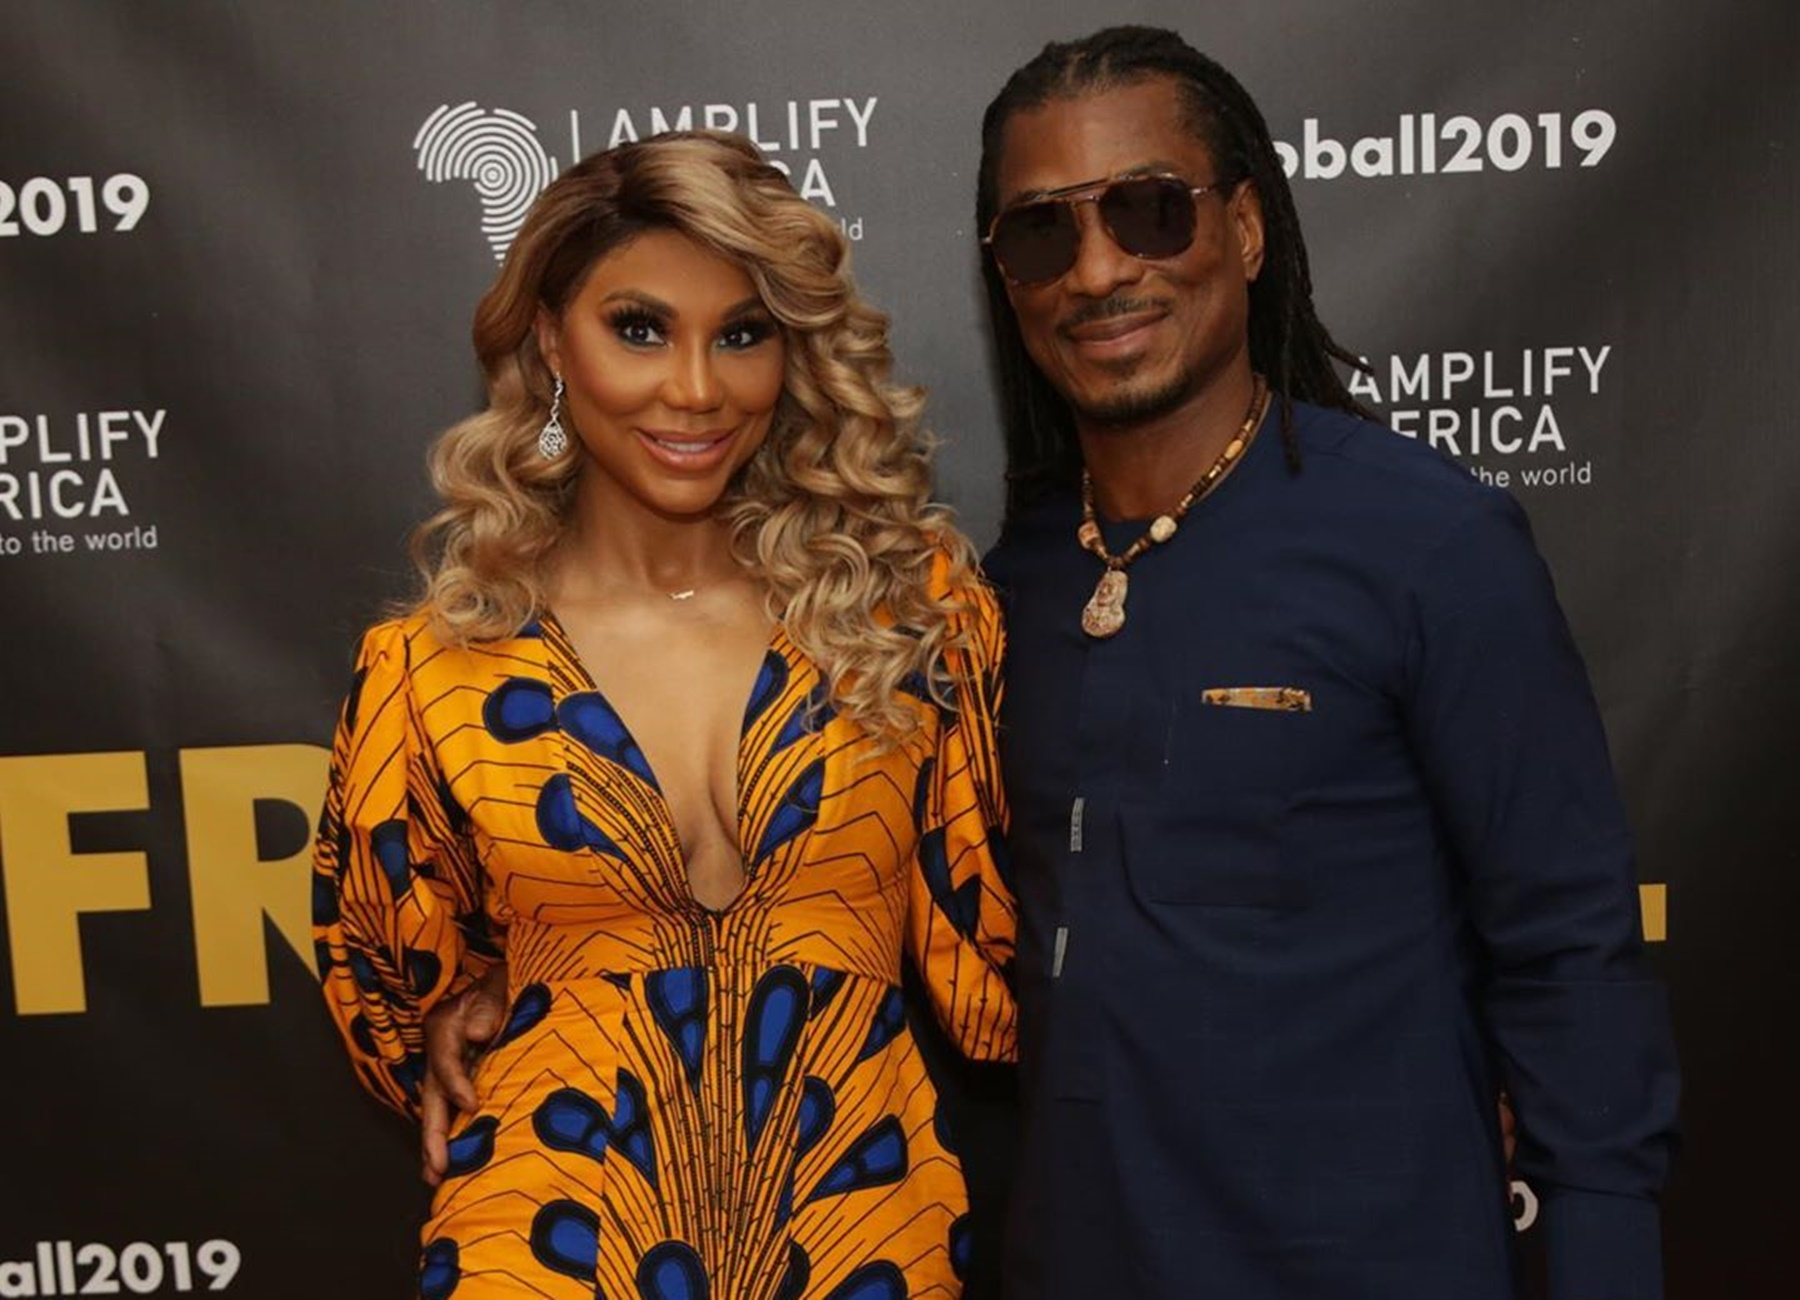 David Adefeso Shares New Footage From Lagos Where He Went With Tamar Braxton - Fans Are Loving It